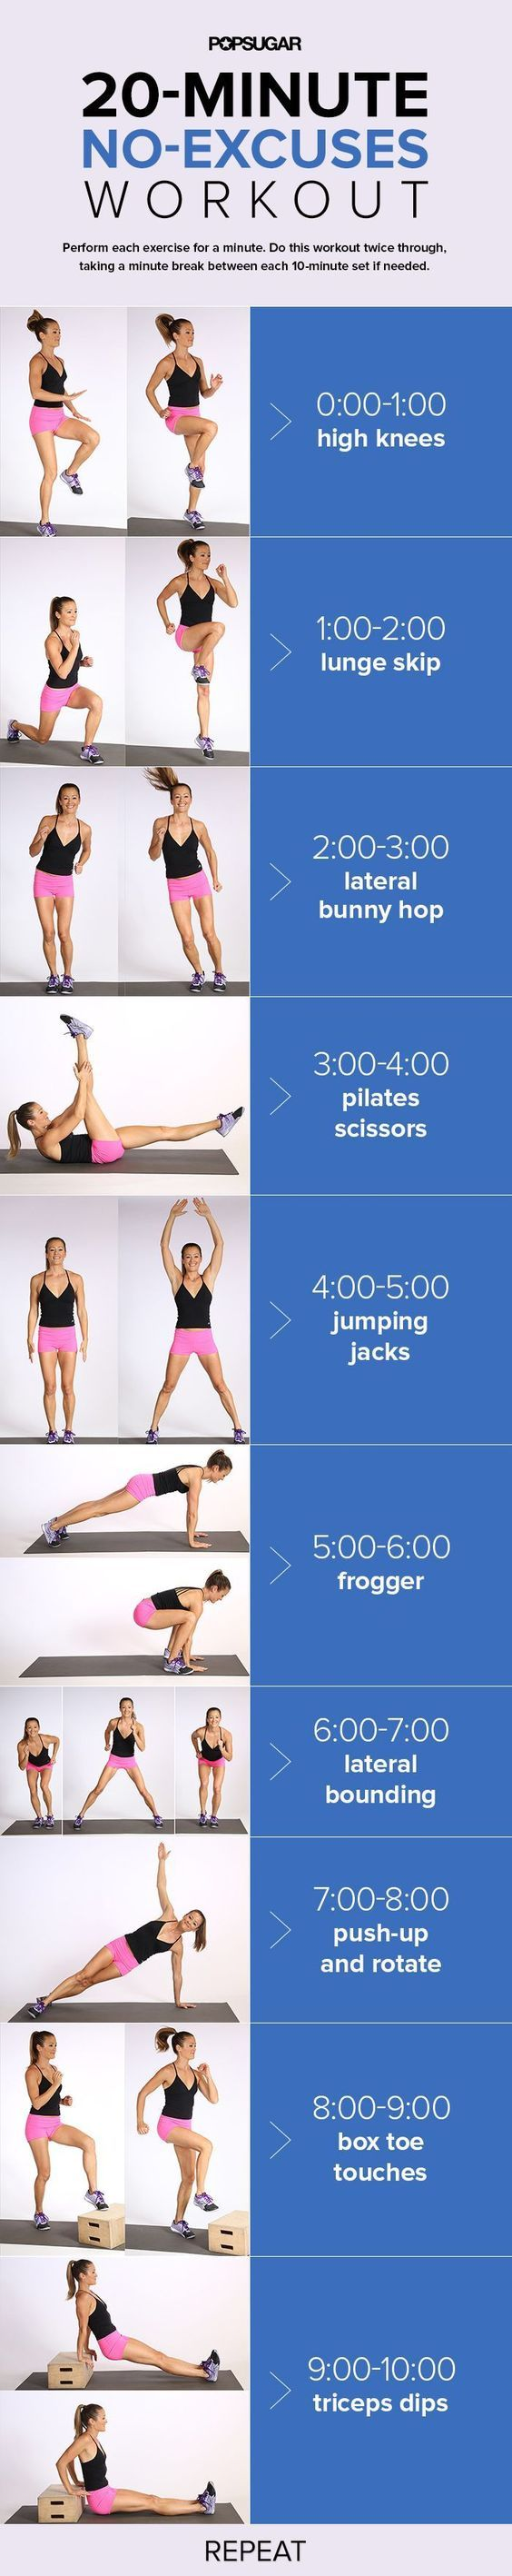 Get ready to hop, skip, and jump your way to fit by doing bodyweight exercises that burn calories and tone you all over.: